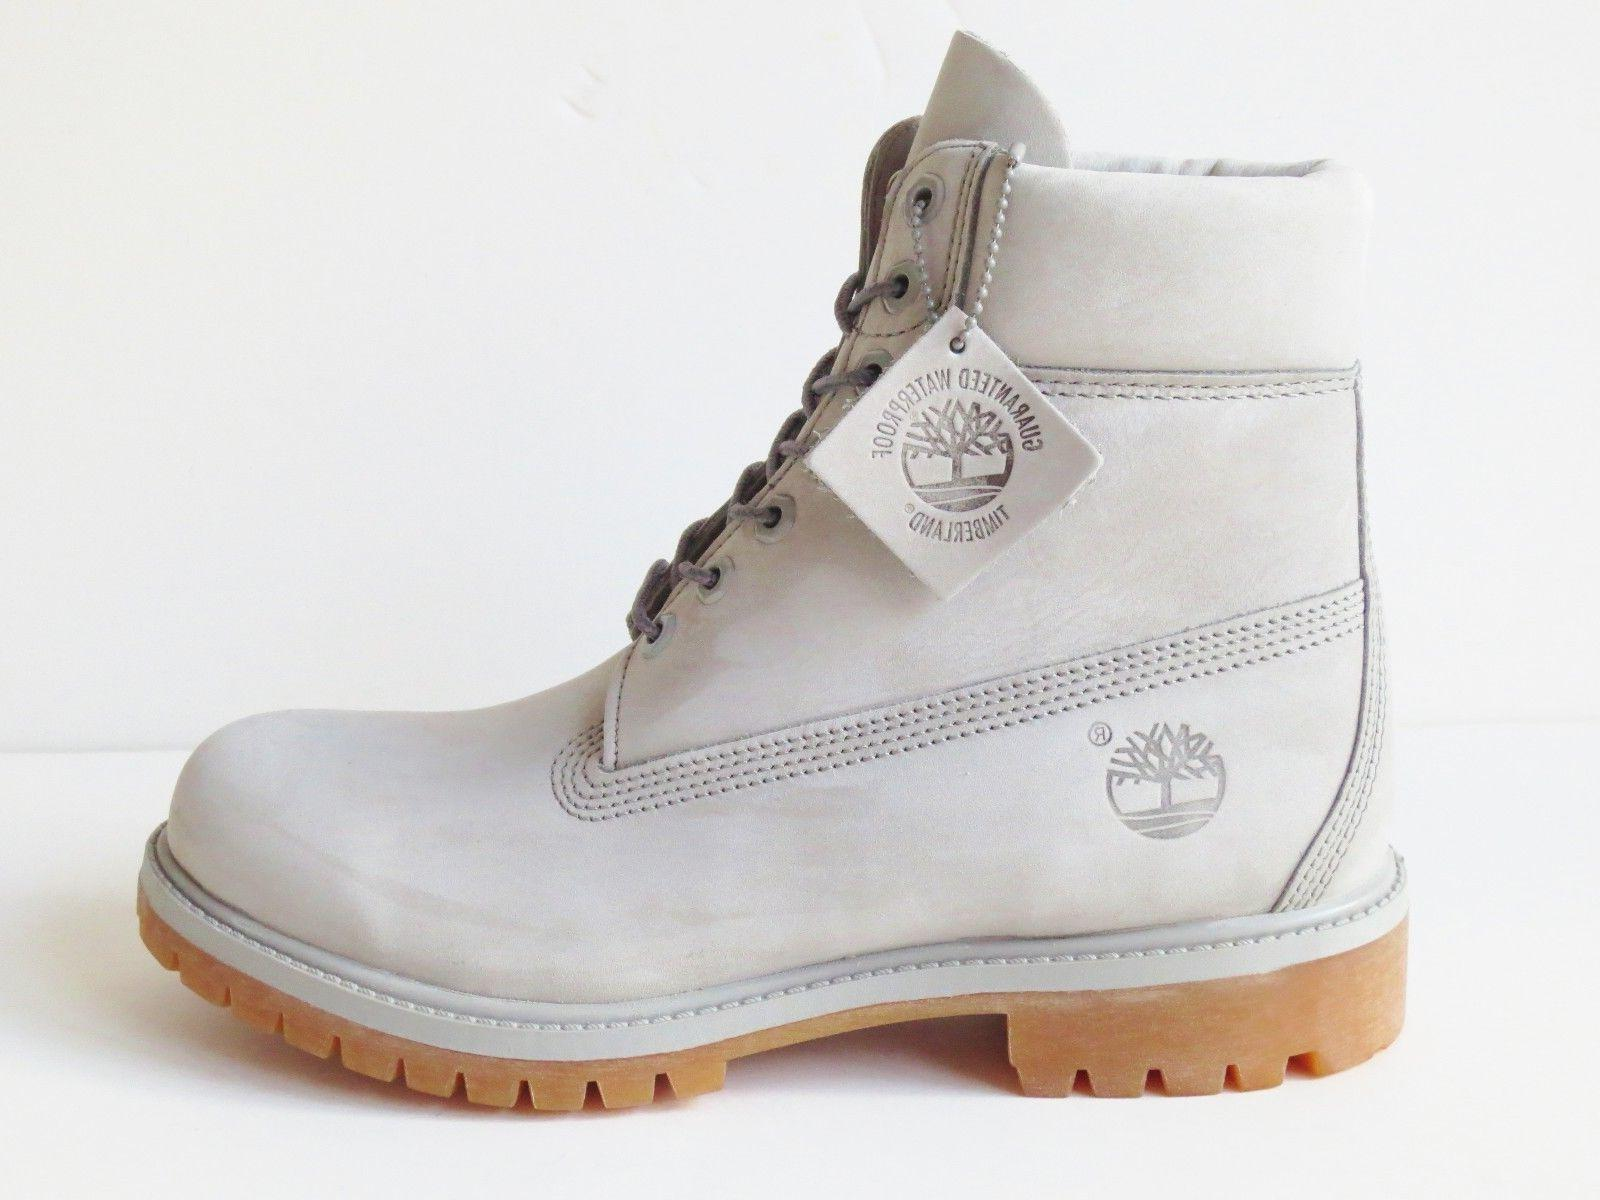 Timberland Light 6 Premium Work Boots